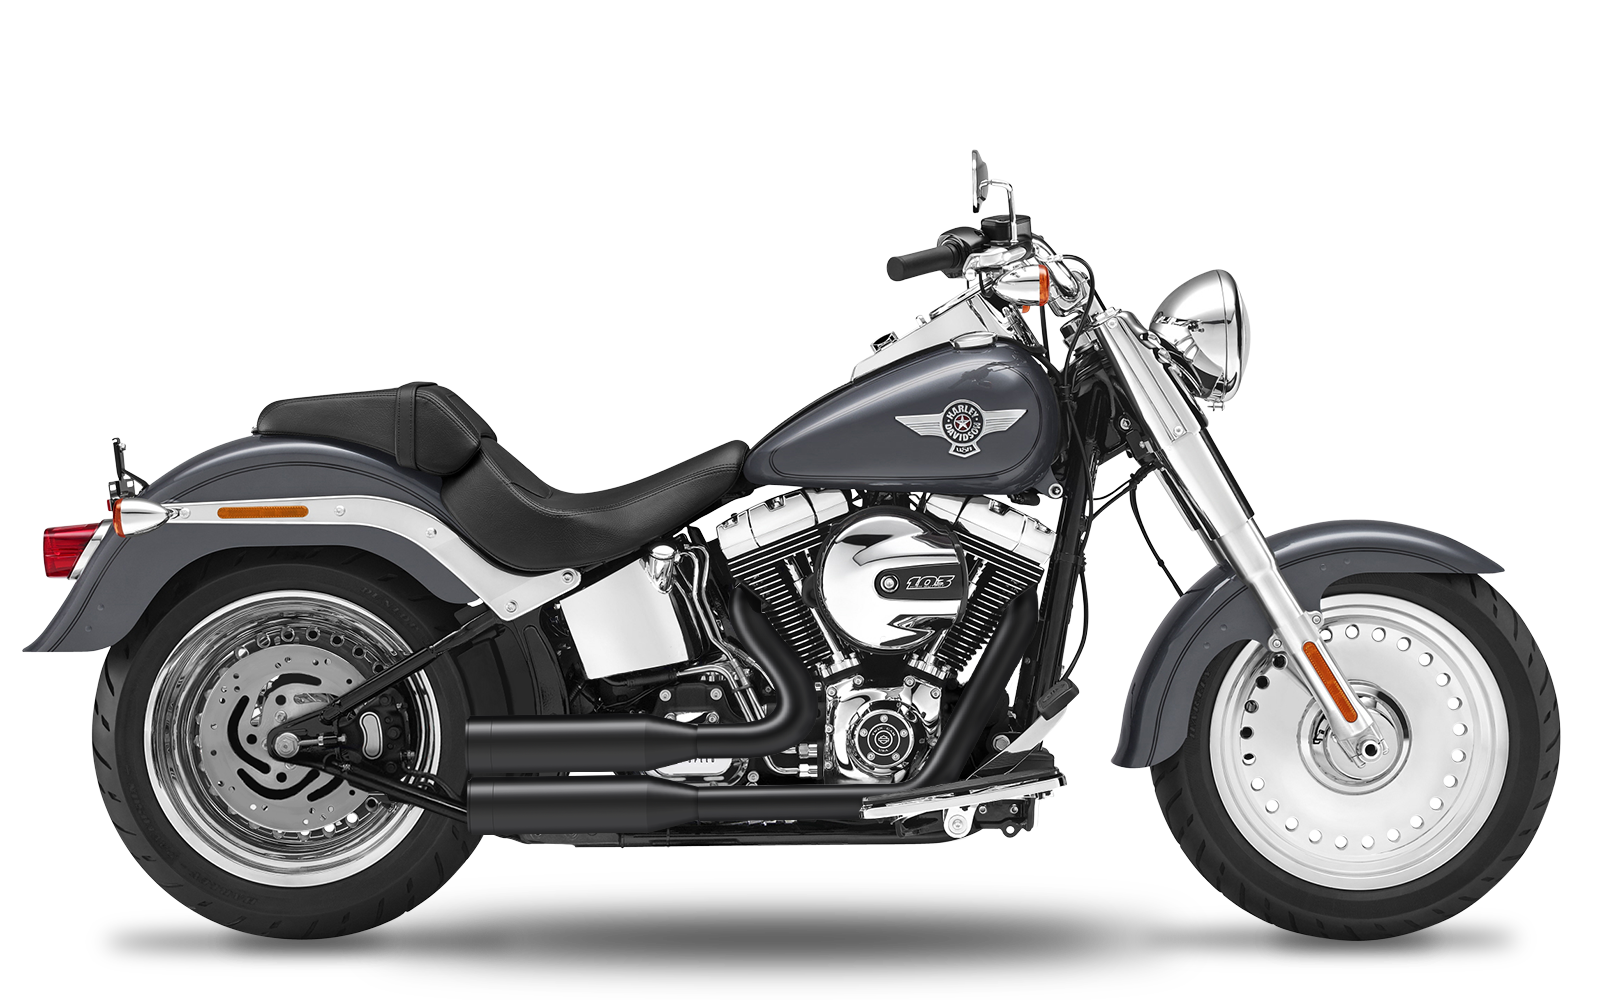 Softail - Fat Boy - TC96 - 2007-2011 - Complete systems